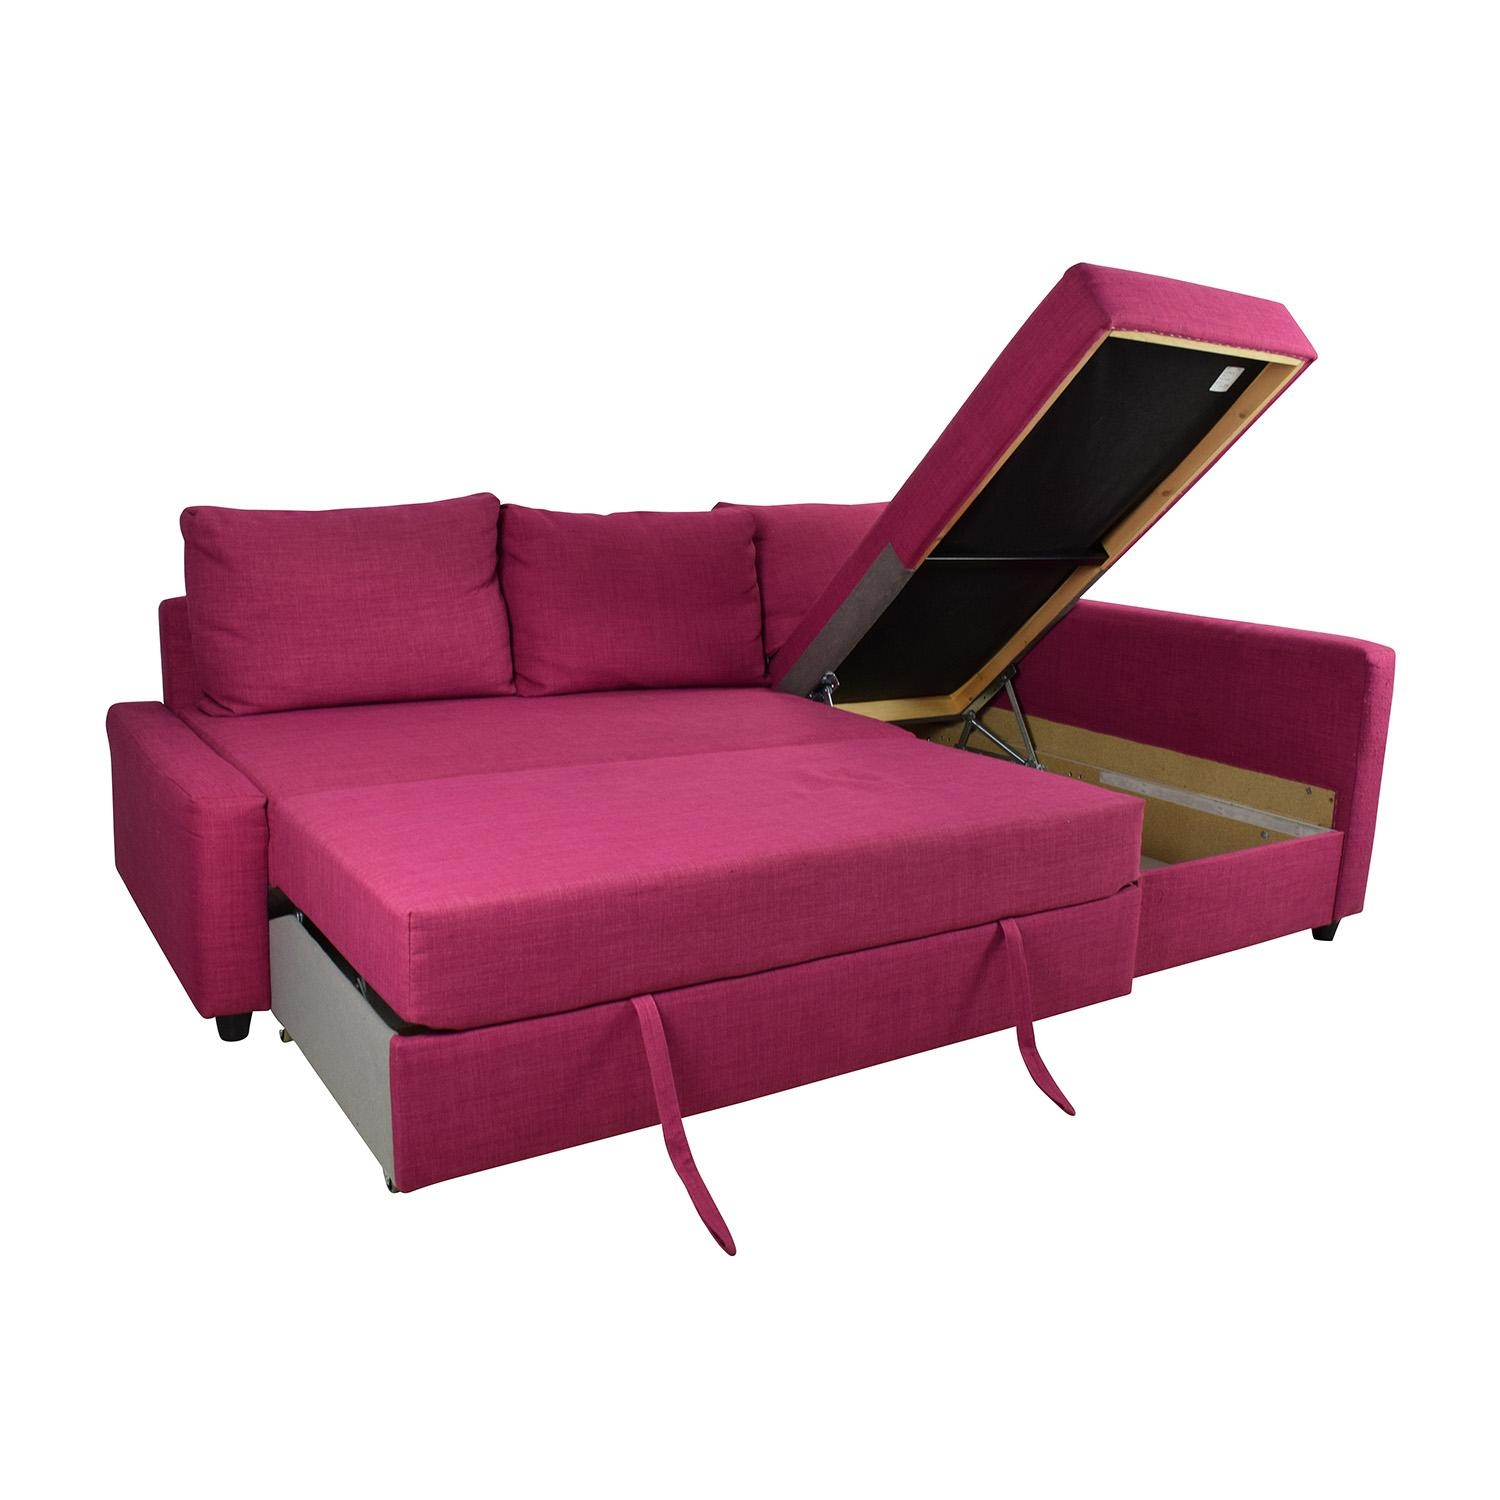 66% Off – Ikea Ikea Friheten Pink Sleeper Sofa / Sofas Pertaining To Sleeper Sofa Sectional Ikea (Image 1 of 20)